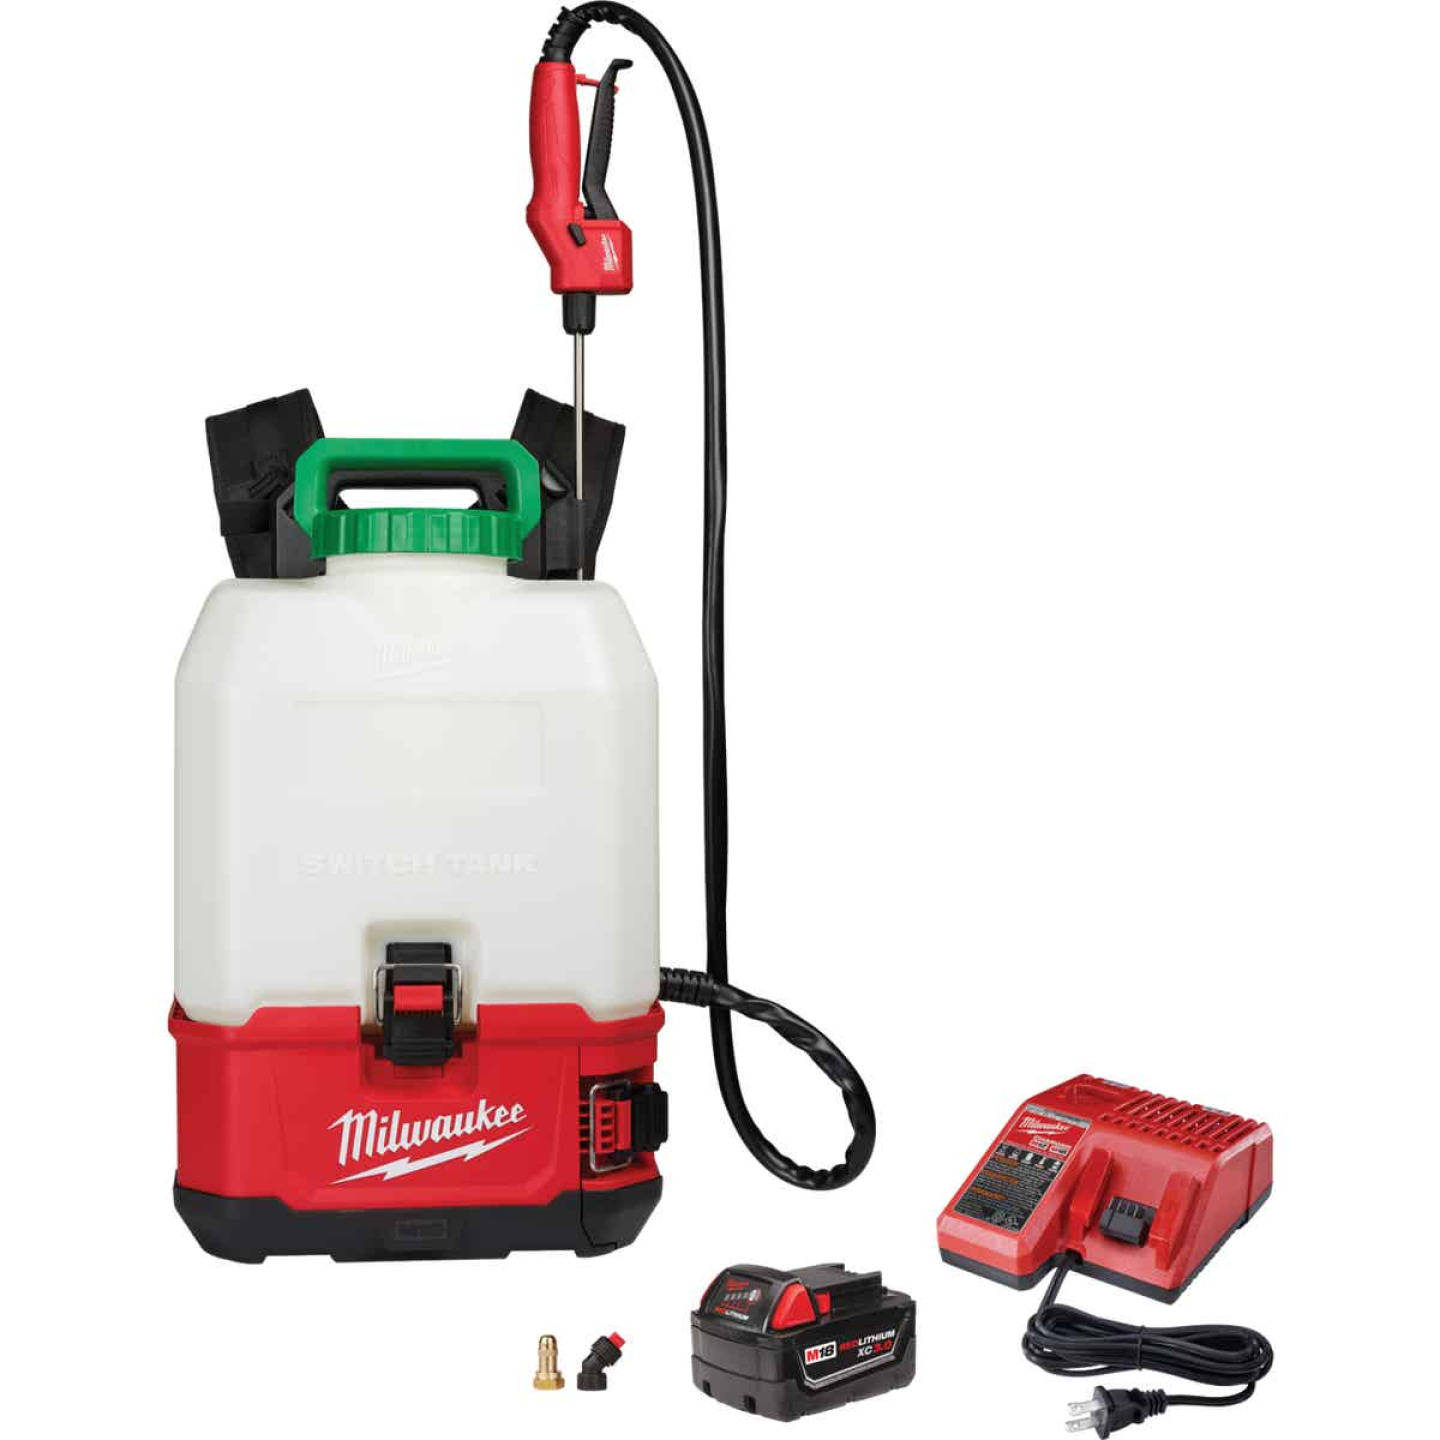 Milwaukee M18 Switch Tank 4 Gal. Backpack Sprayer Kit Image 1